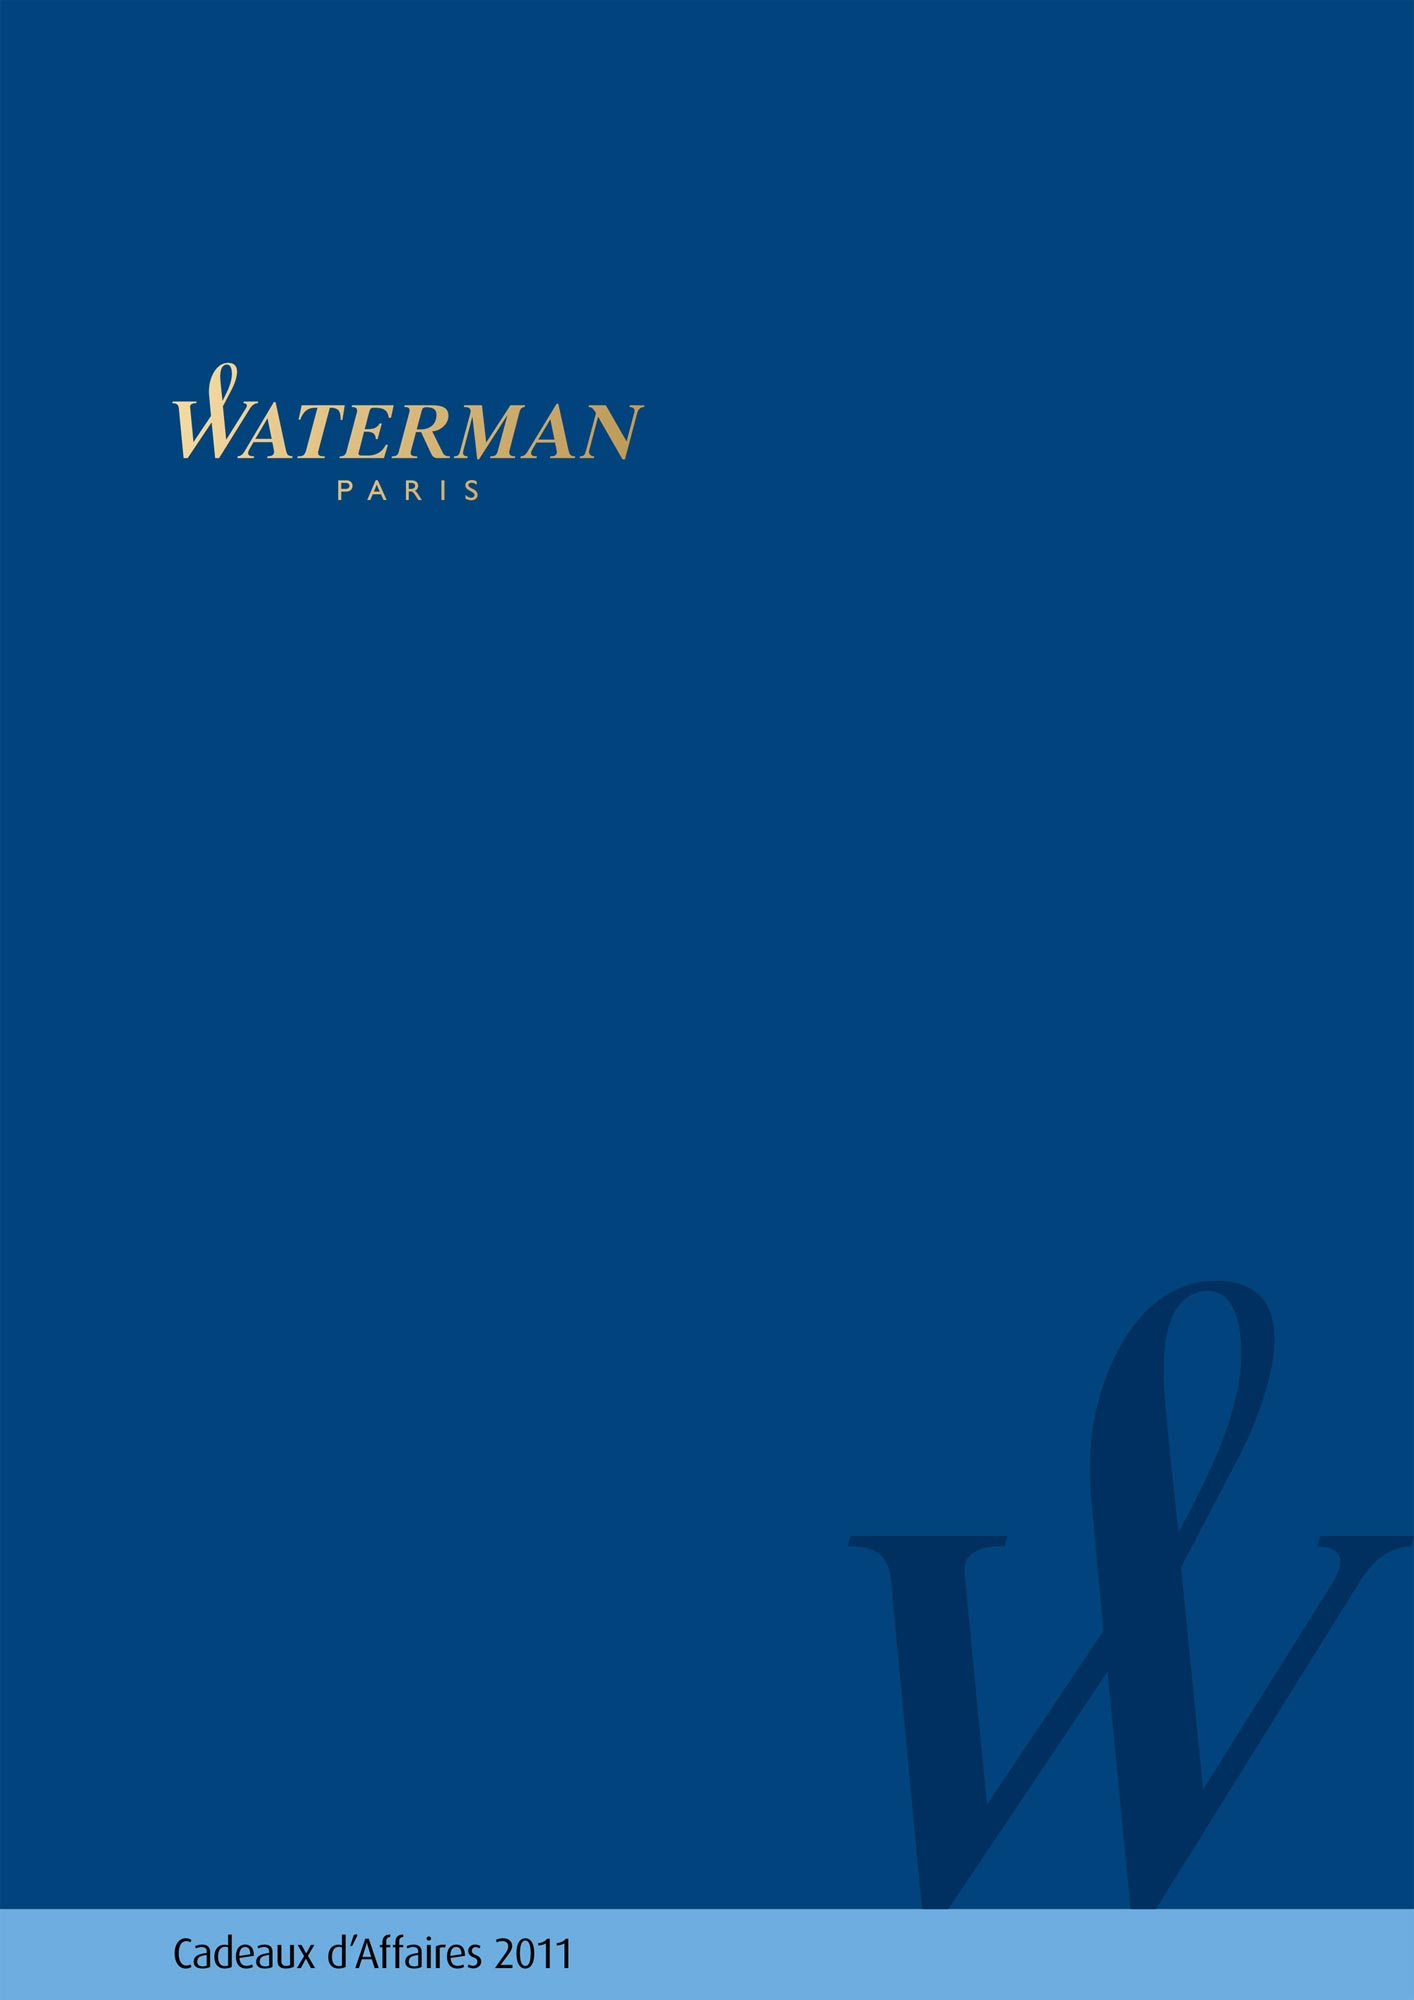 Catalog Waterman B2B 2011